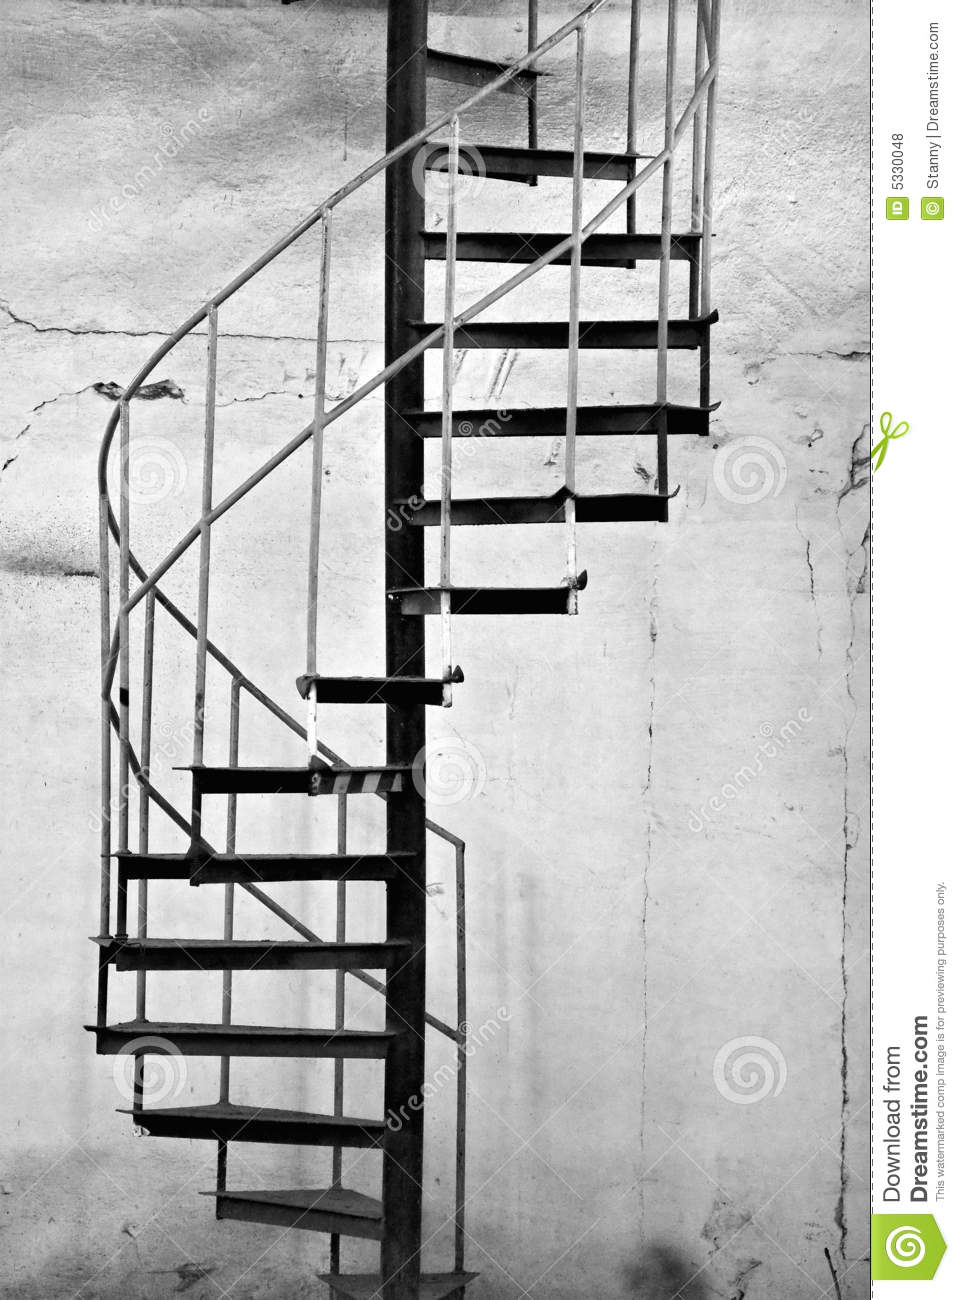 Metal spiral staircase royalty free stock photos image for Aluminum spiral staircase prices